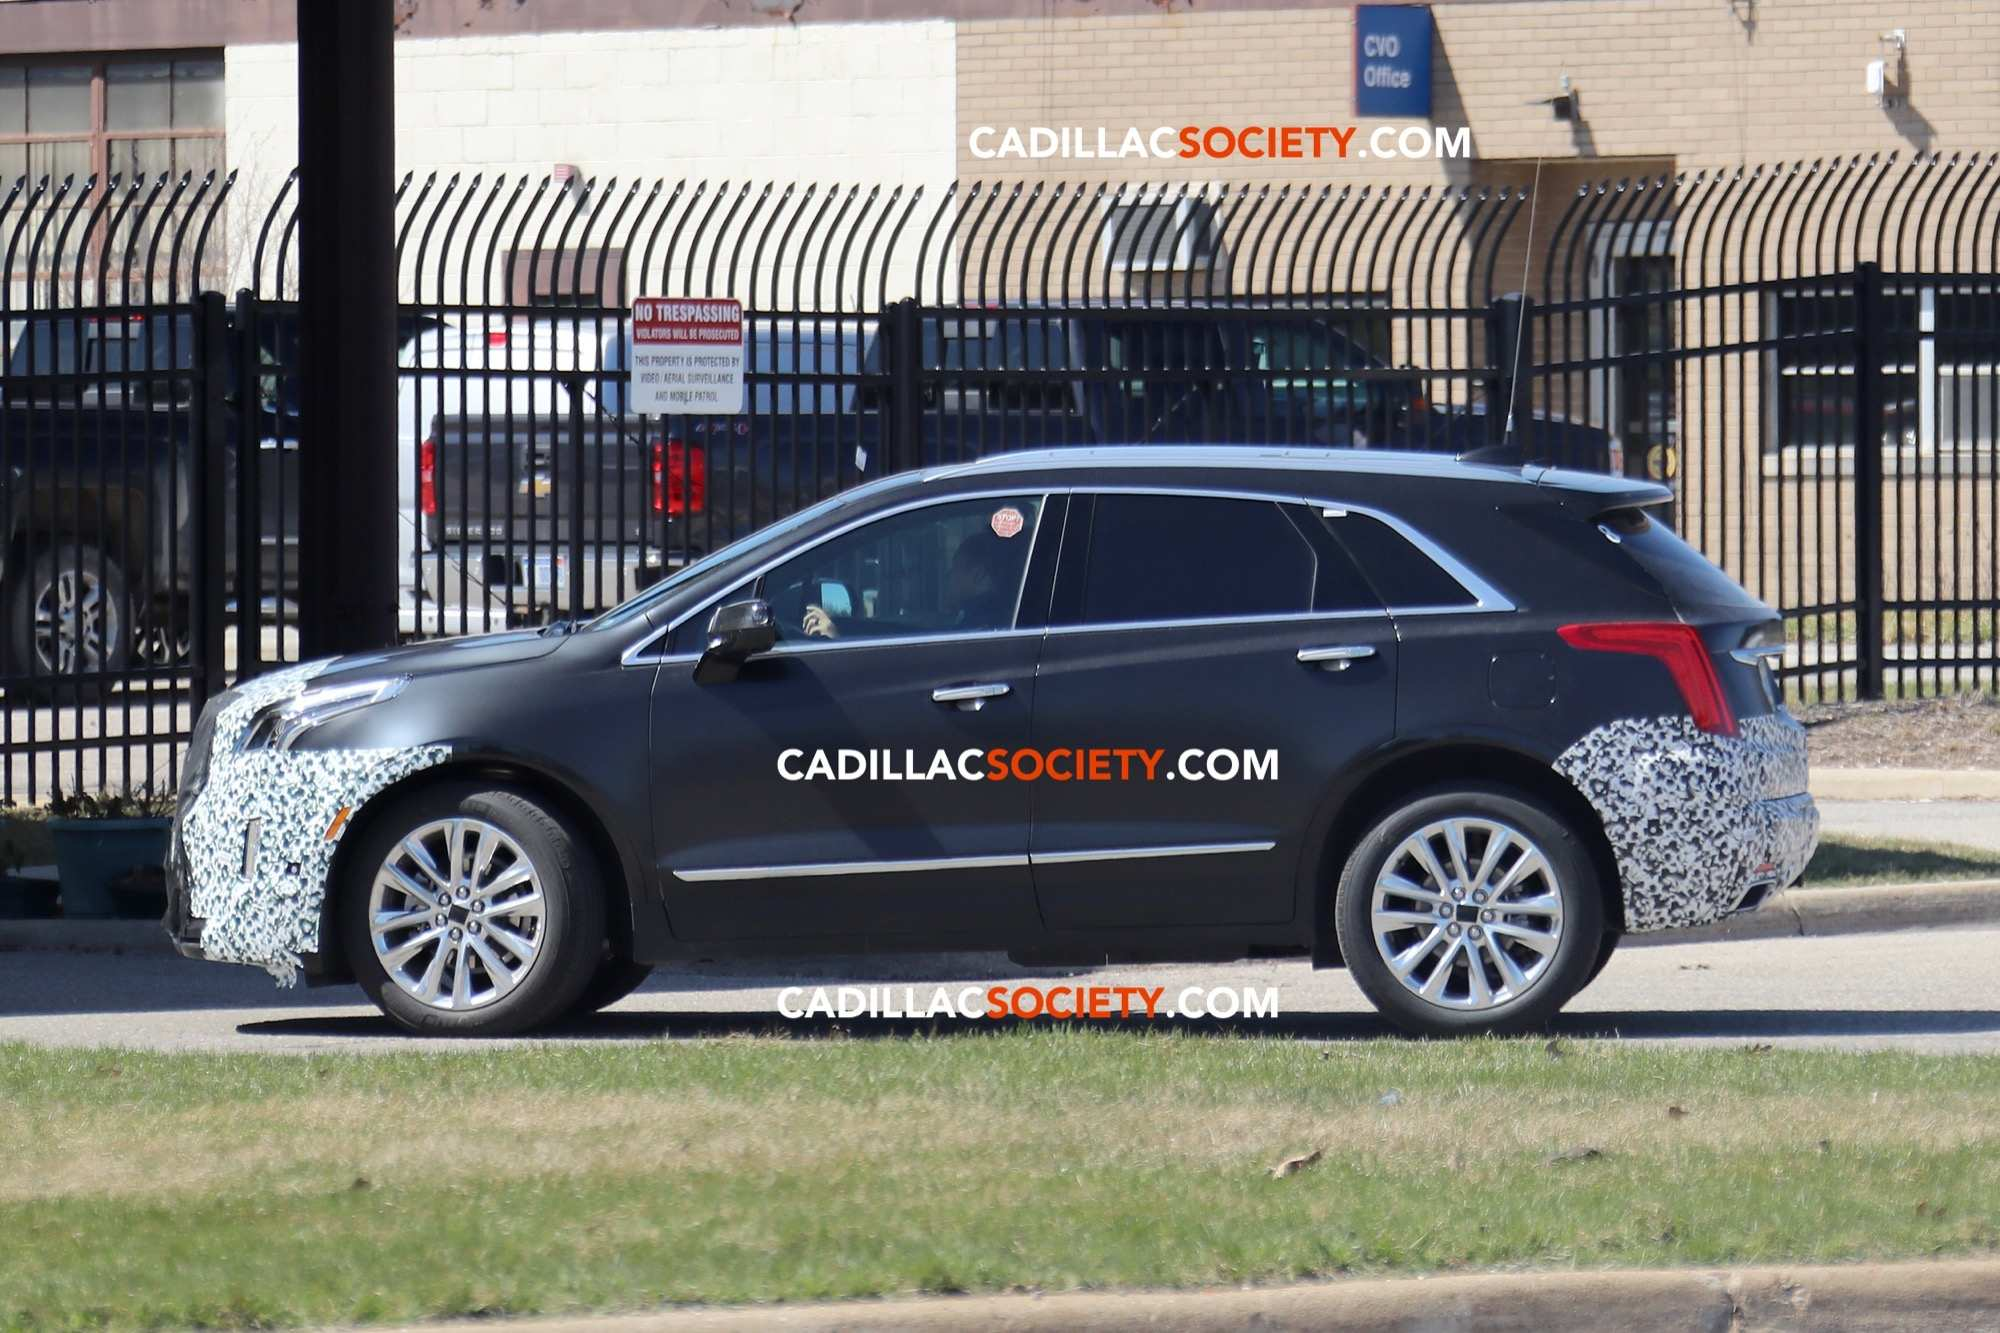 30 New Spy Shots Cadillac Xt5 Exterior